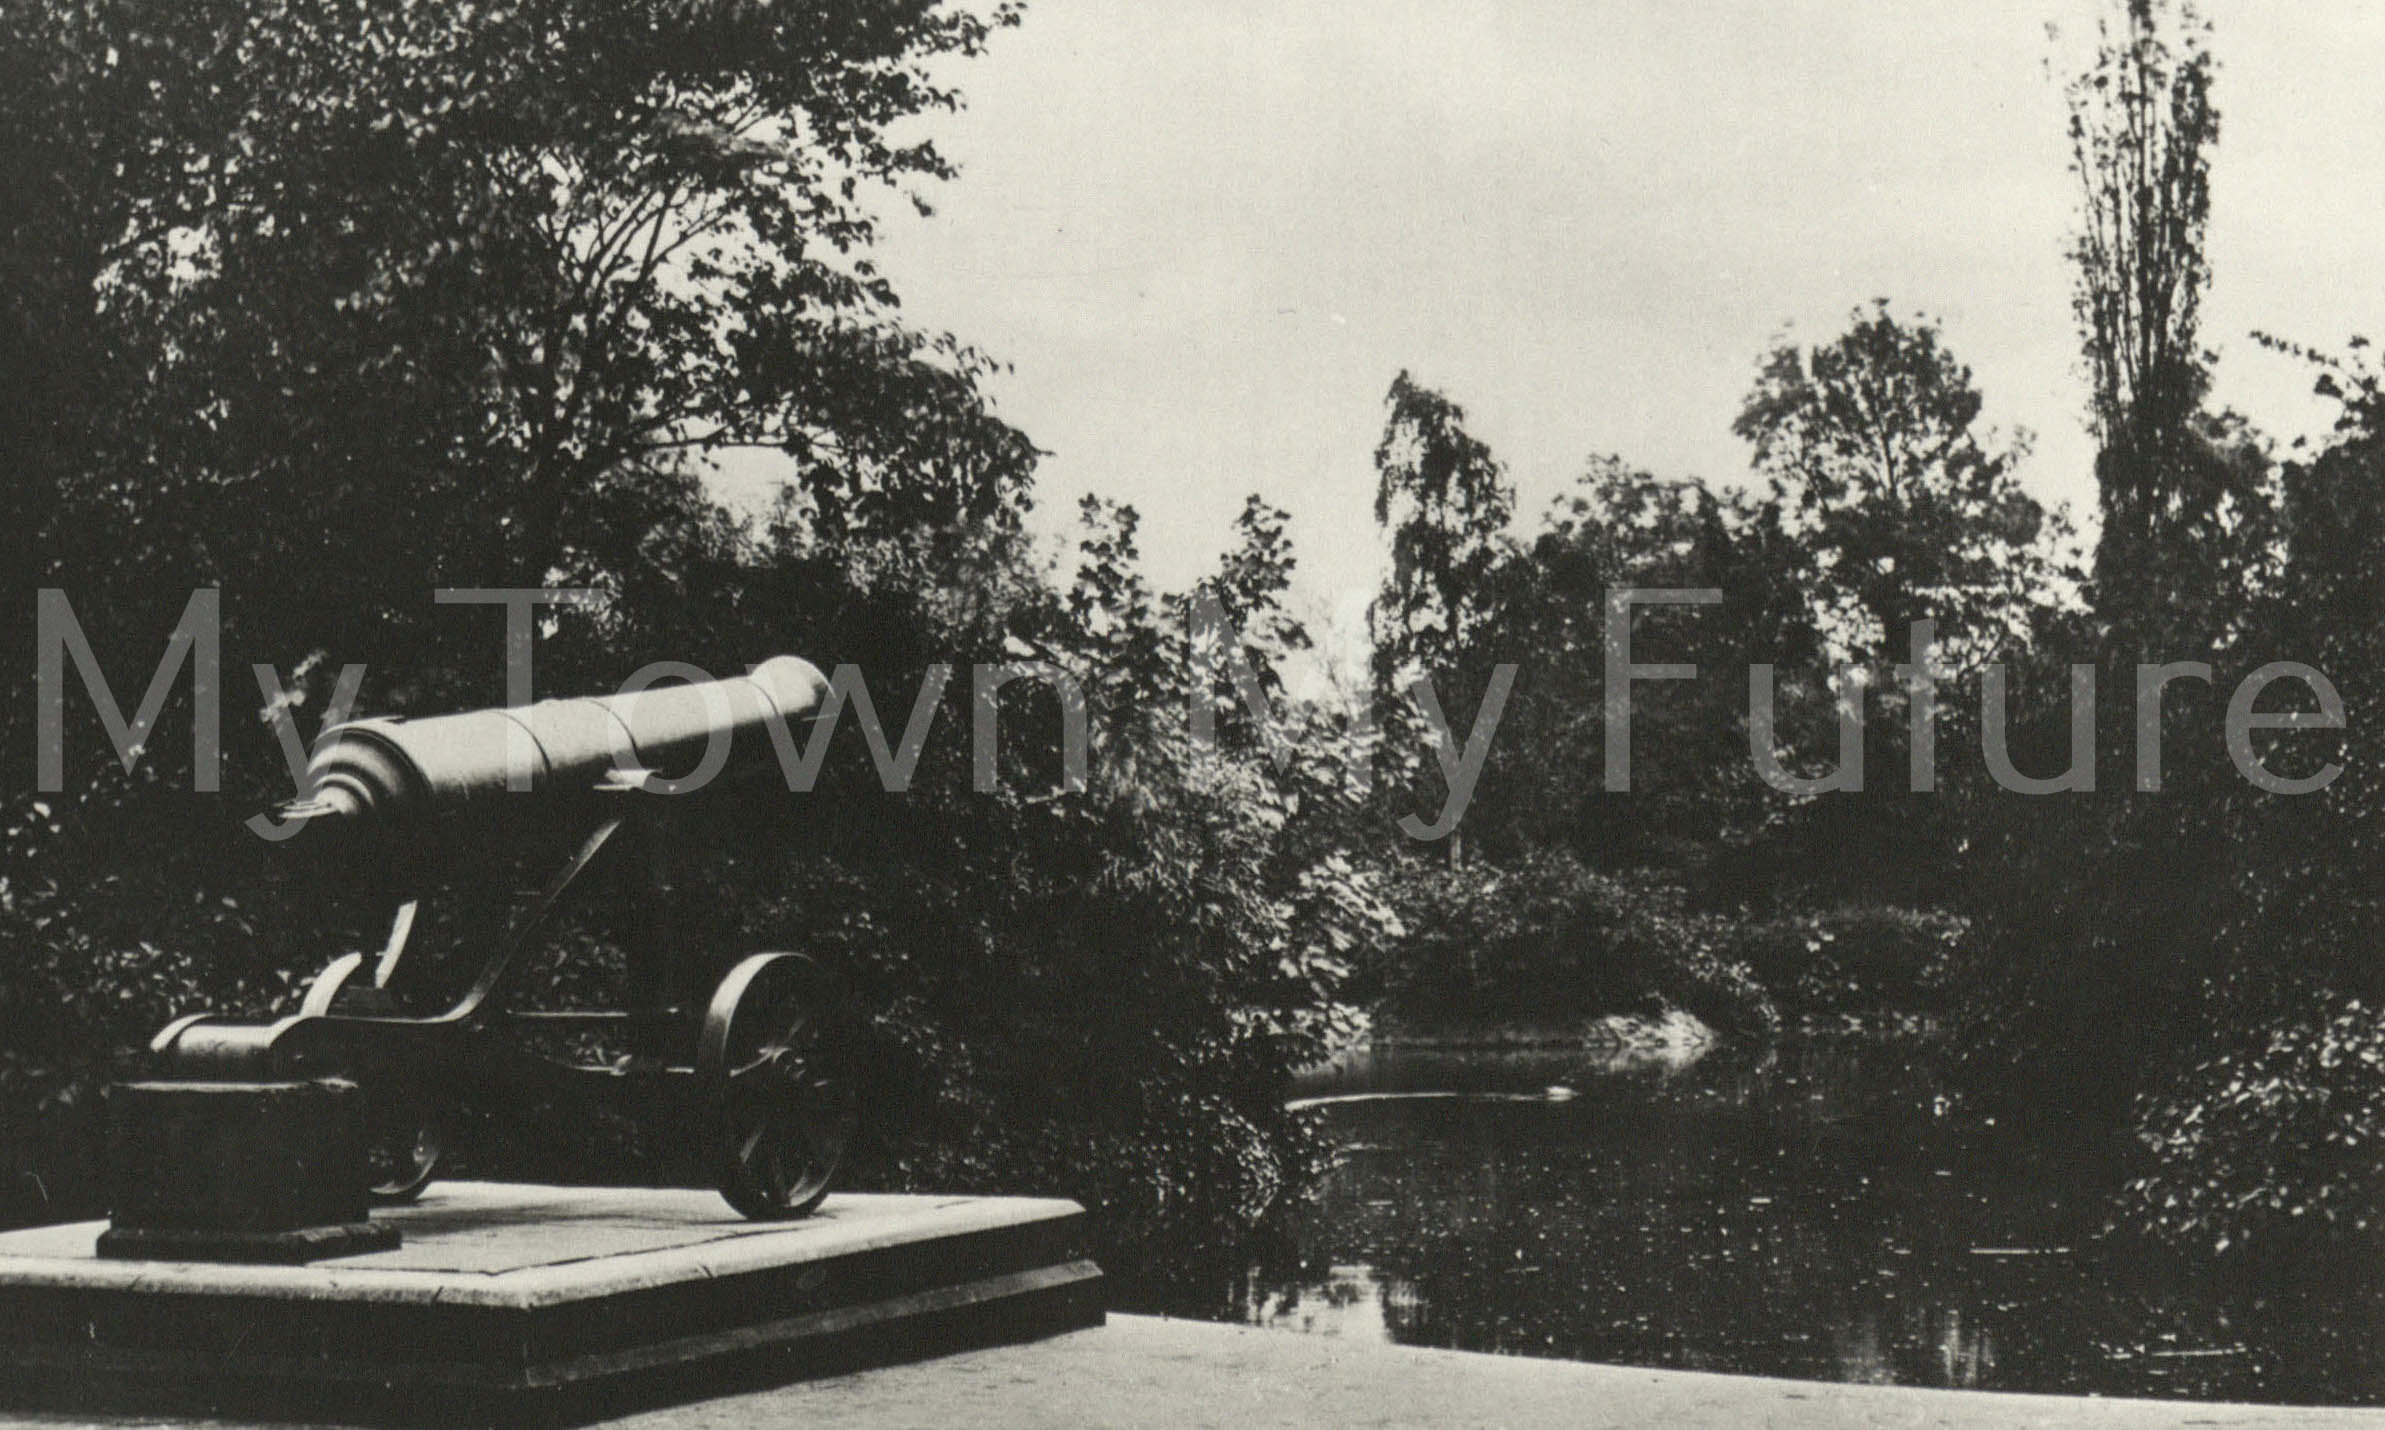 Albert Park - Russian Cannon (Sebastopol) and Small Lake - Postcard - Paul Stephenson